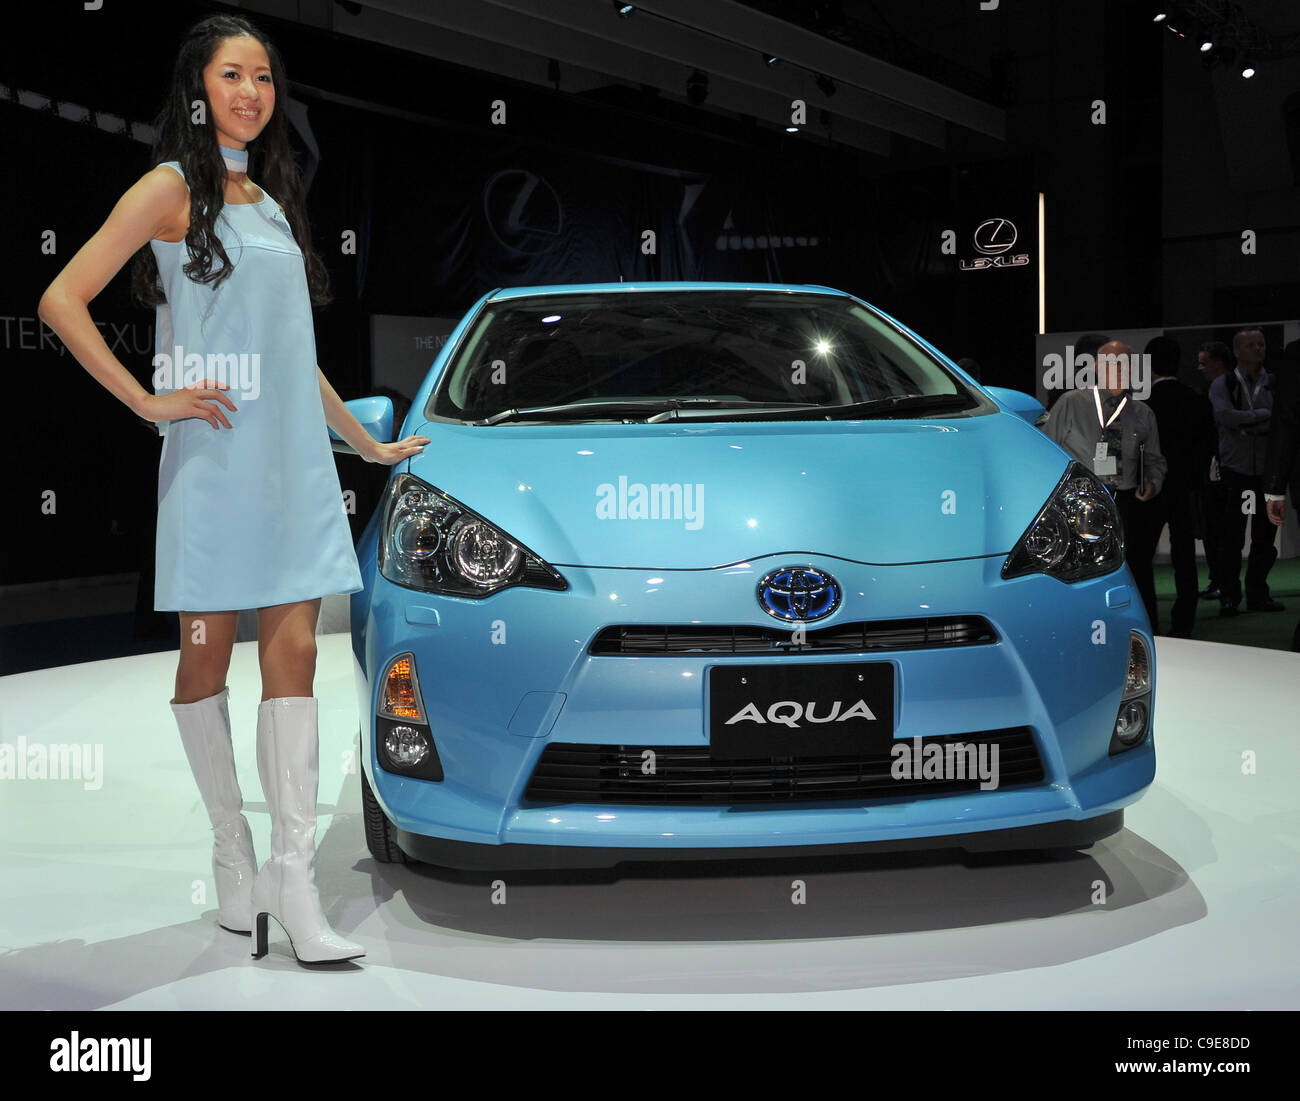 November 30, 2011, Tokyo, Japan - Toyota introduces Aqua, its smallest hybrid vehicle, to tap demand among younger - Stock Image